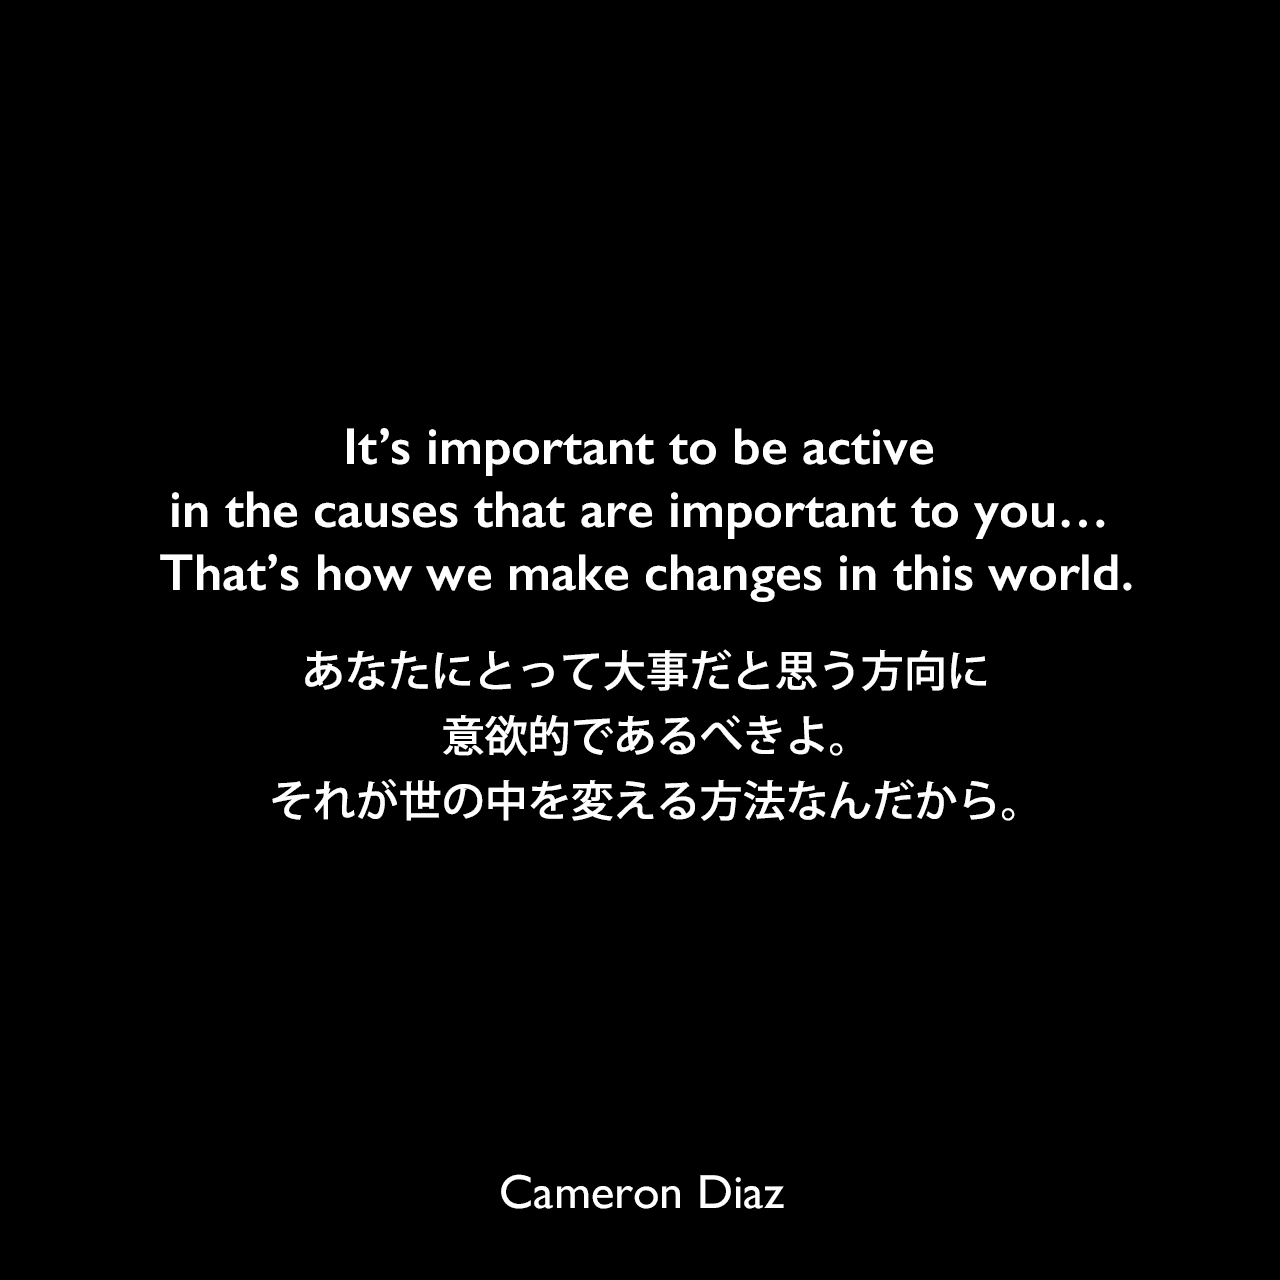 It's important to be active in the causes that are important to you… That's how we make changes in this world.あなたにとって大事だと思う方向に意欲的であるべきよ。それが世の中を変える方法なんだから。Cameron Diaz